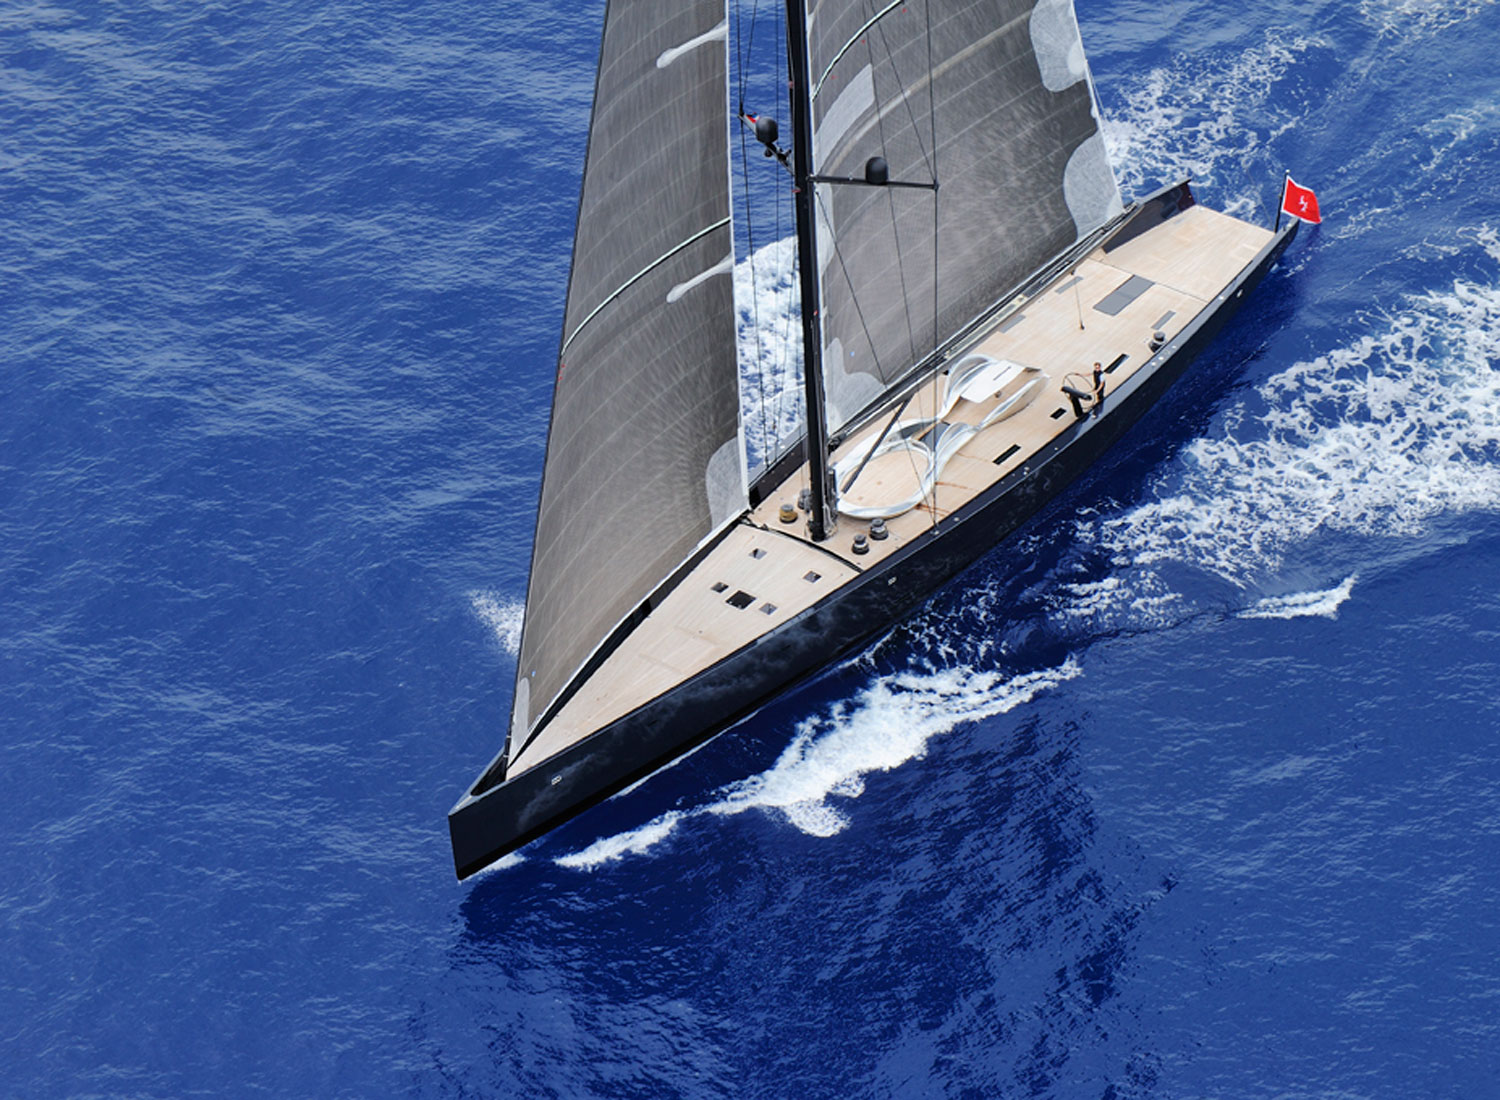 ANGELS SHARE Yacht Charter Details Wally Yachts